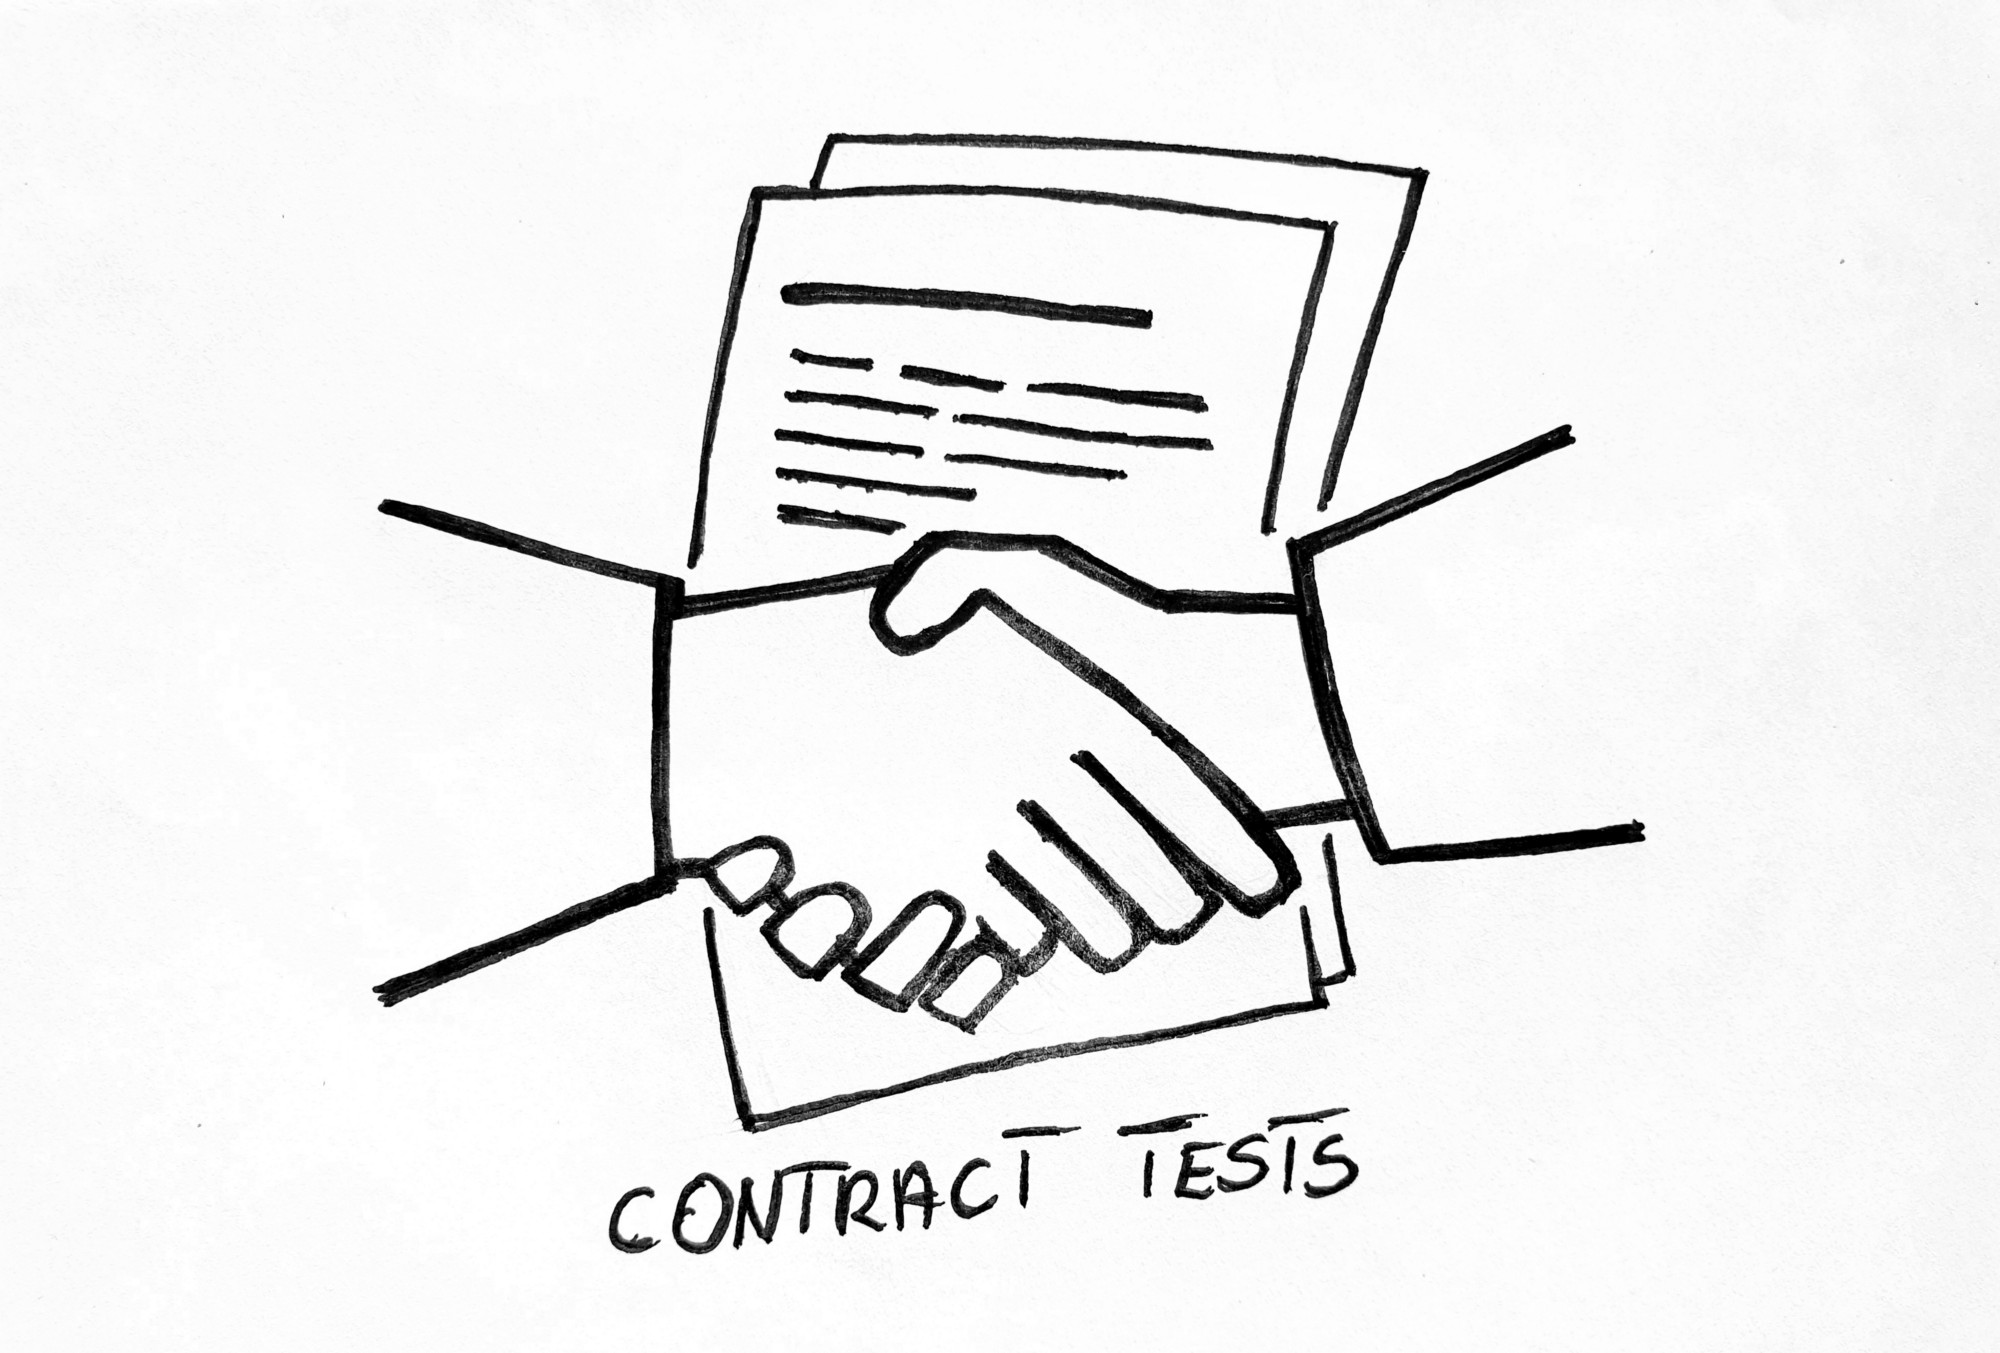 A drawing of a handshake with a contract document in the background